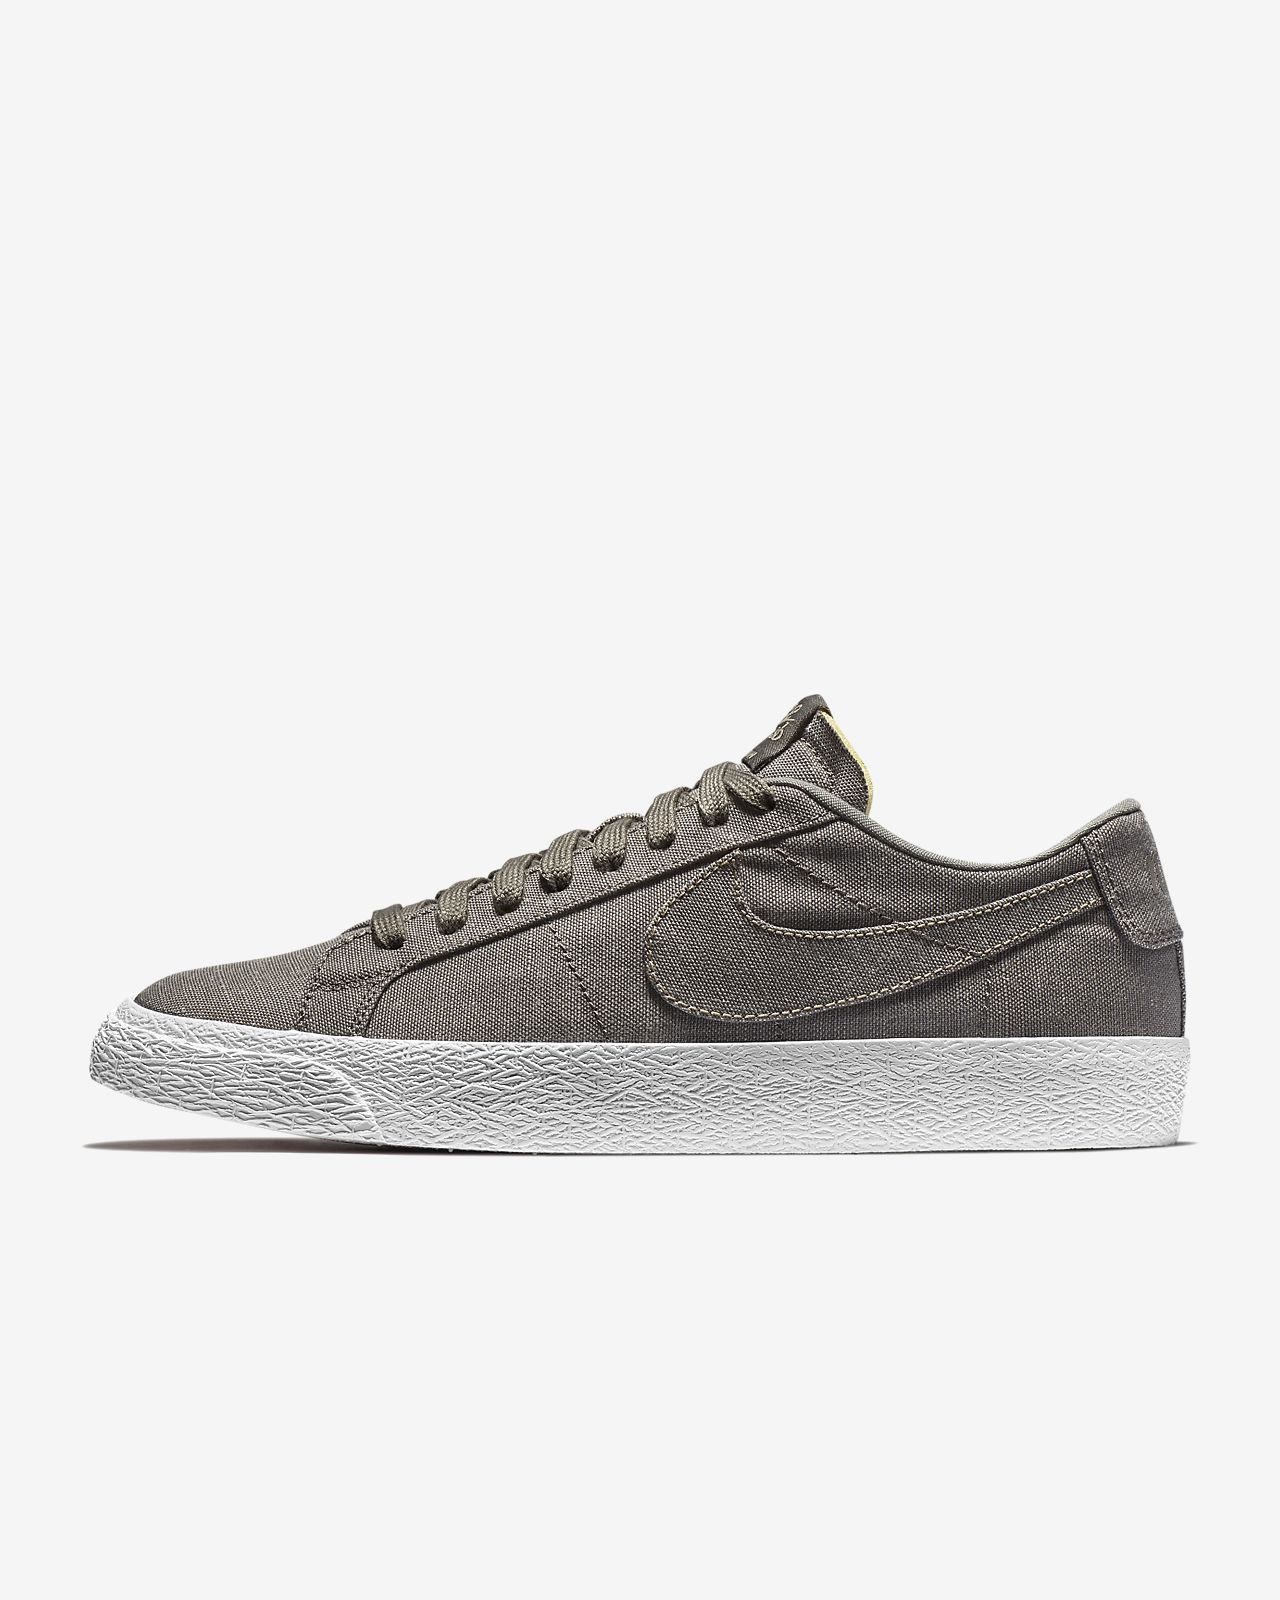 superior quality 8472e d3c14 closeout nike sb zoom blazer low canvas deconstructed herren  skateboardschuh 68b9a c2ee5